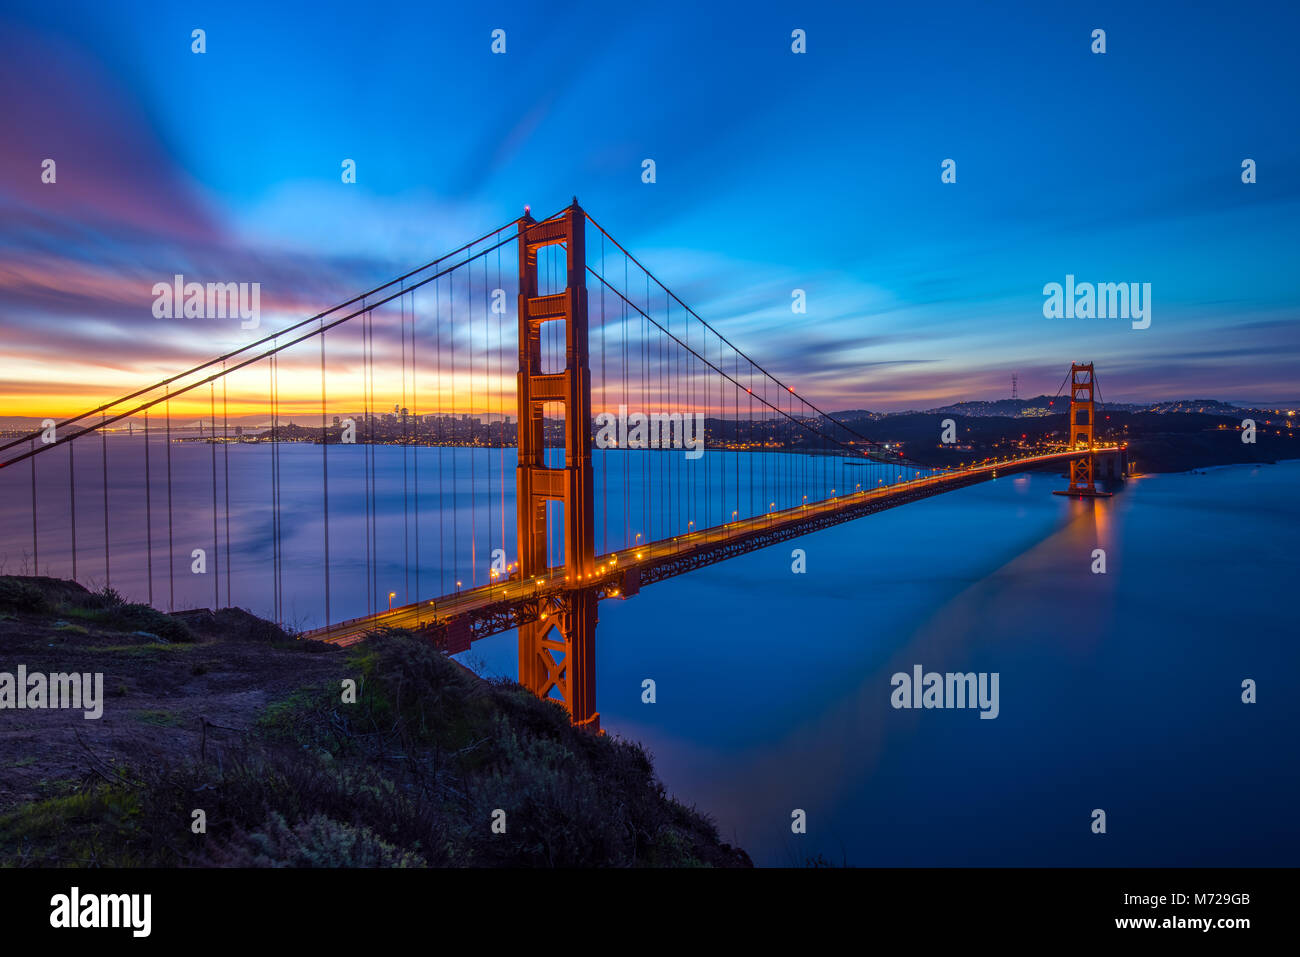 Golden Gate Bridge Panoramic Sunrise View with Great Dynamic Sky - Stock Image